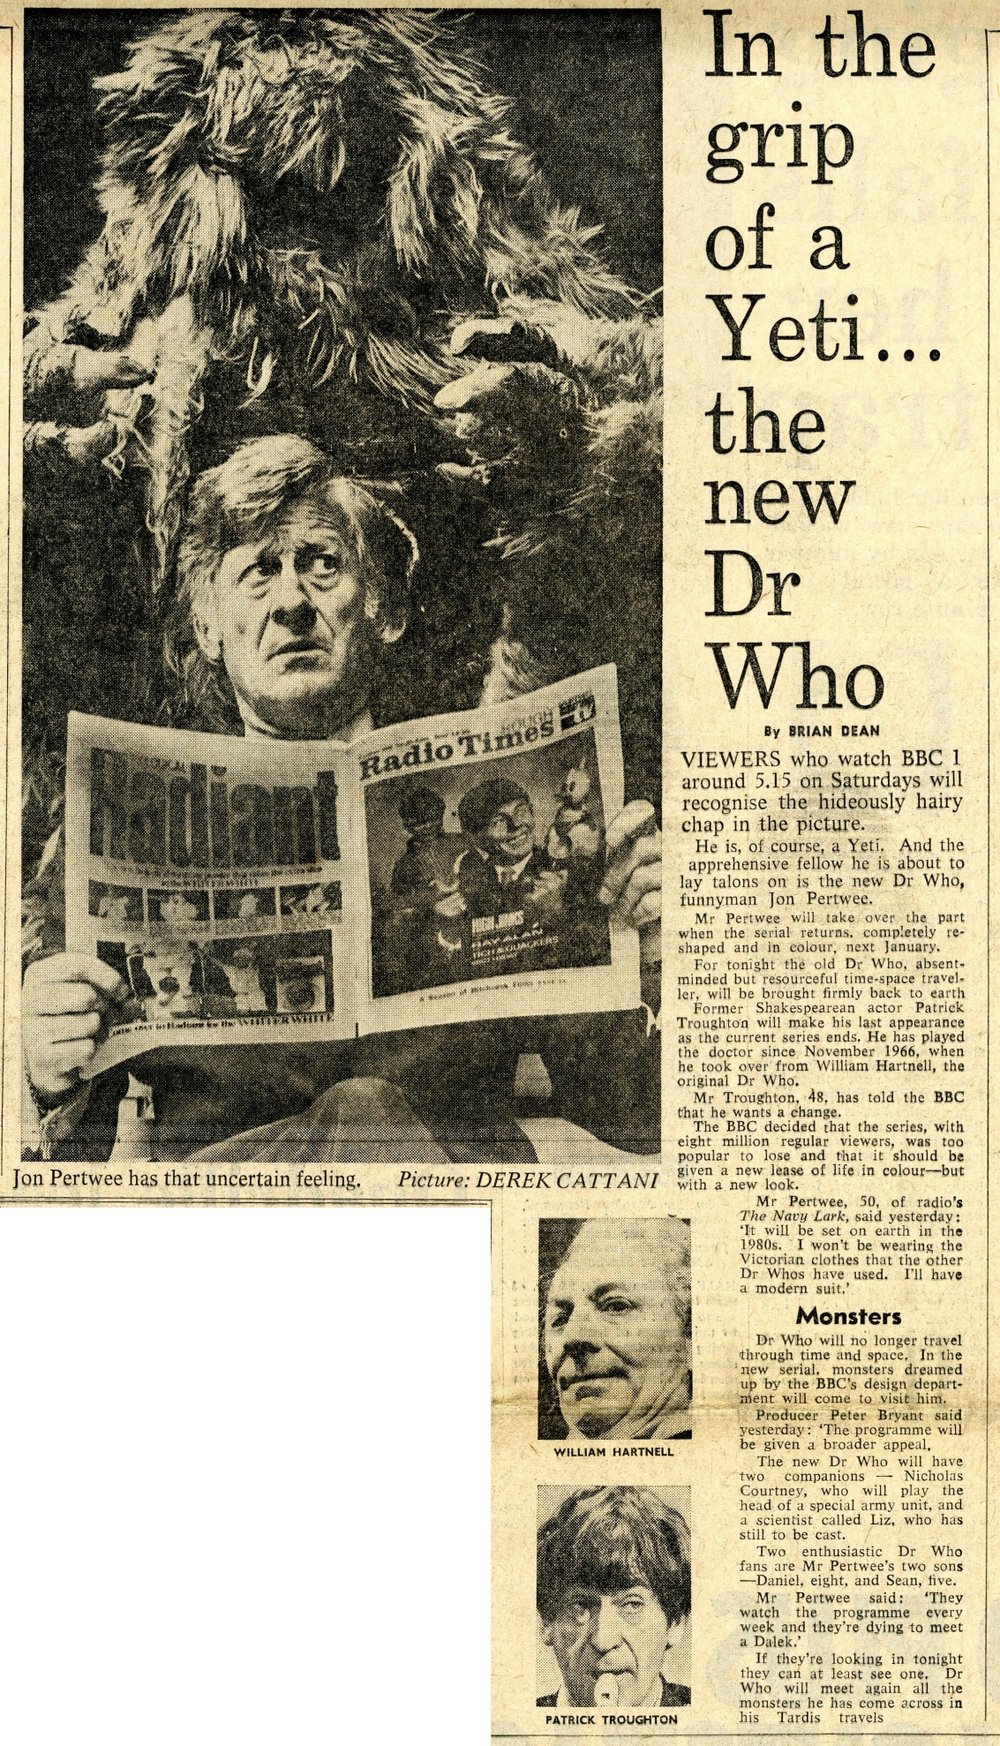 Daily Mail, 21 June 1969